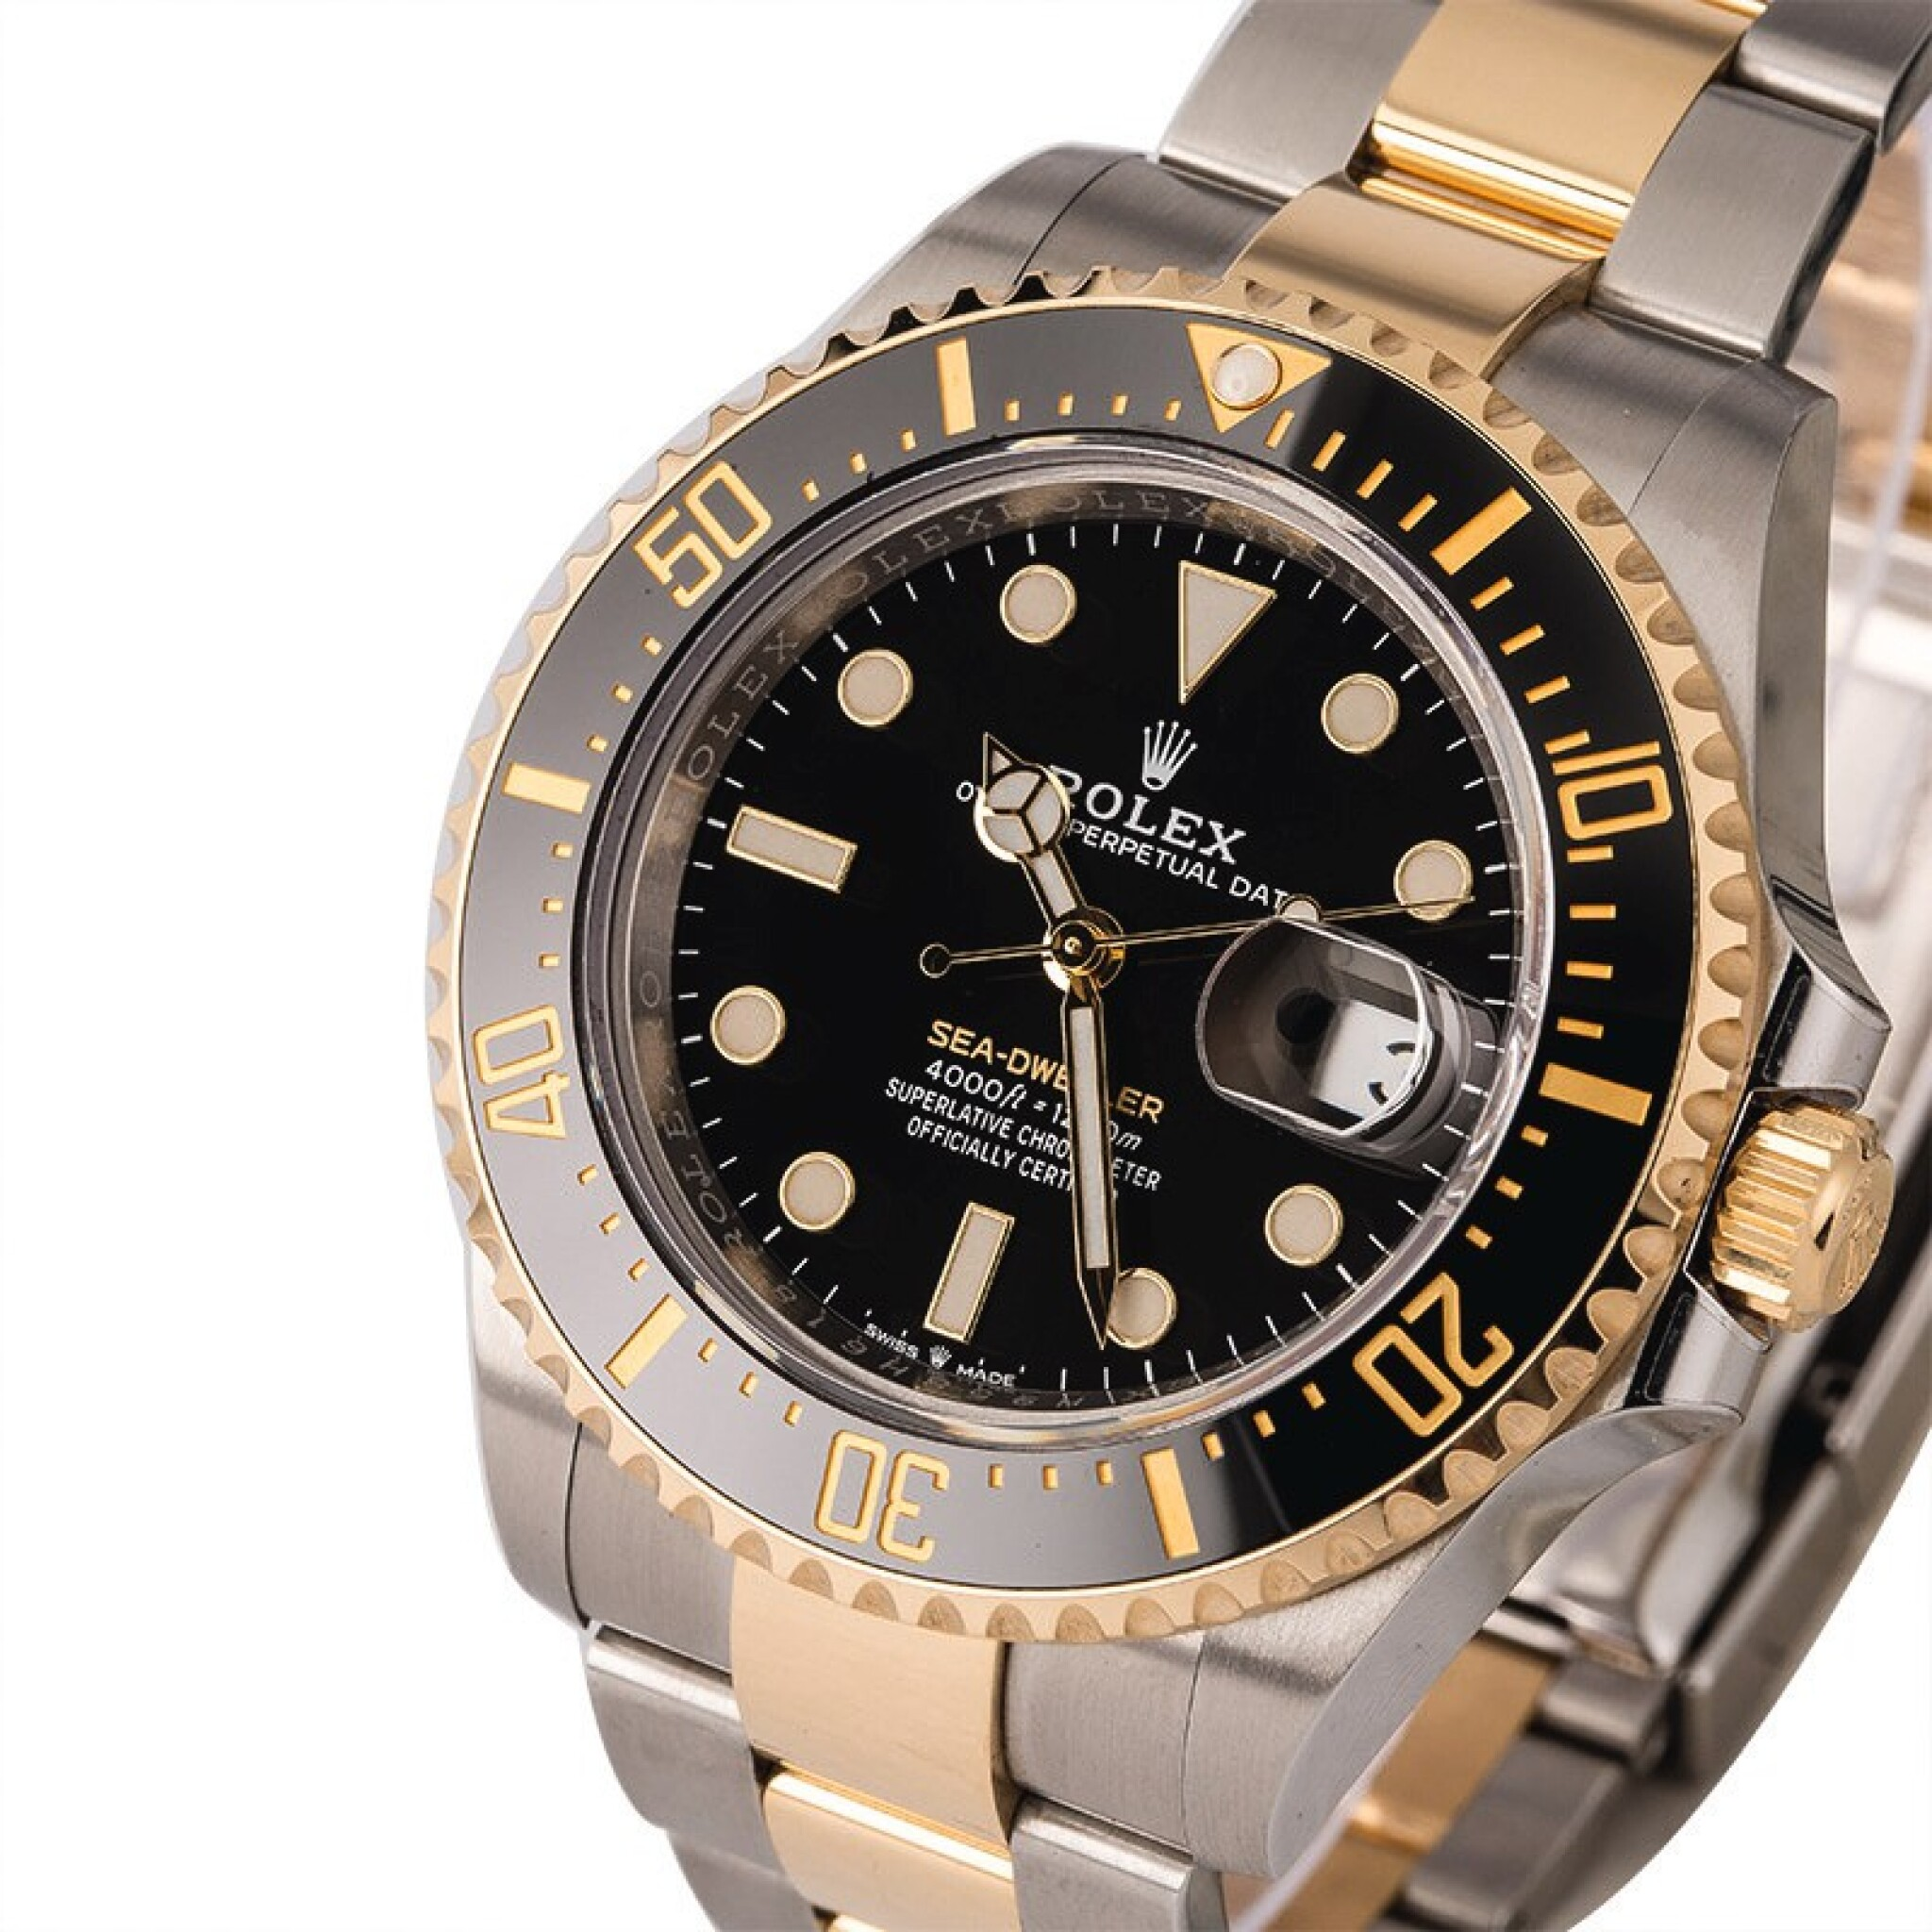 View full screen - View 1 of Lot 5. ROLEX | Sea-Dweller, Ref. 126603, A Stainless Steel and Yellow Gold Wristwatch with Bracelet, Circa 2019.